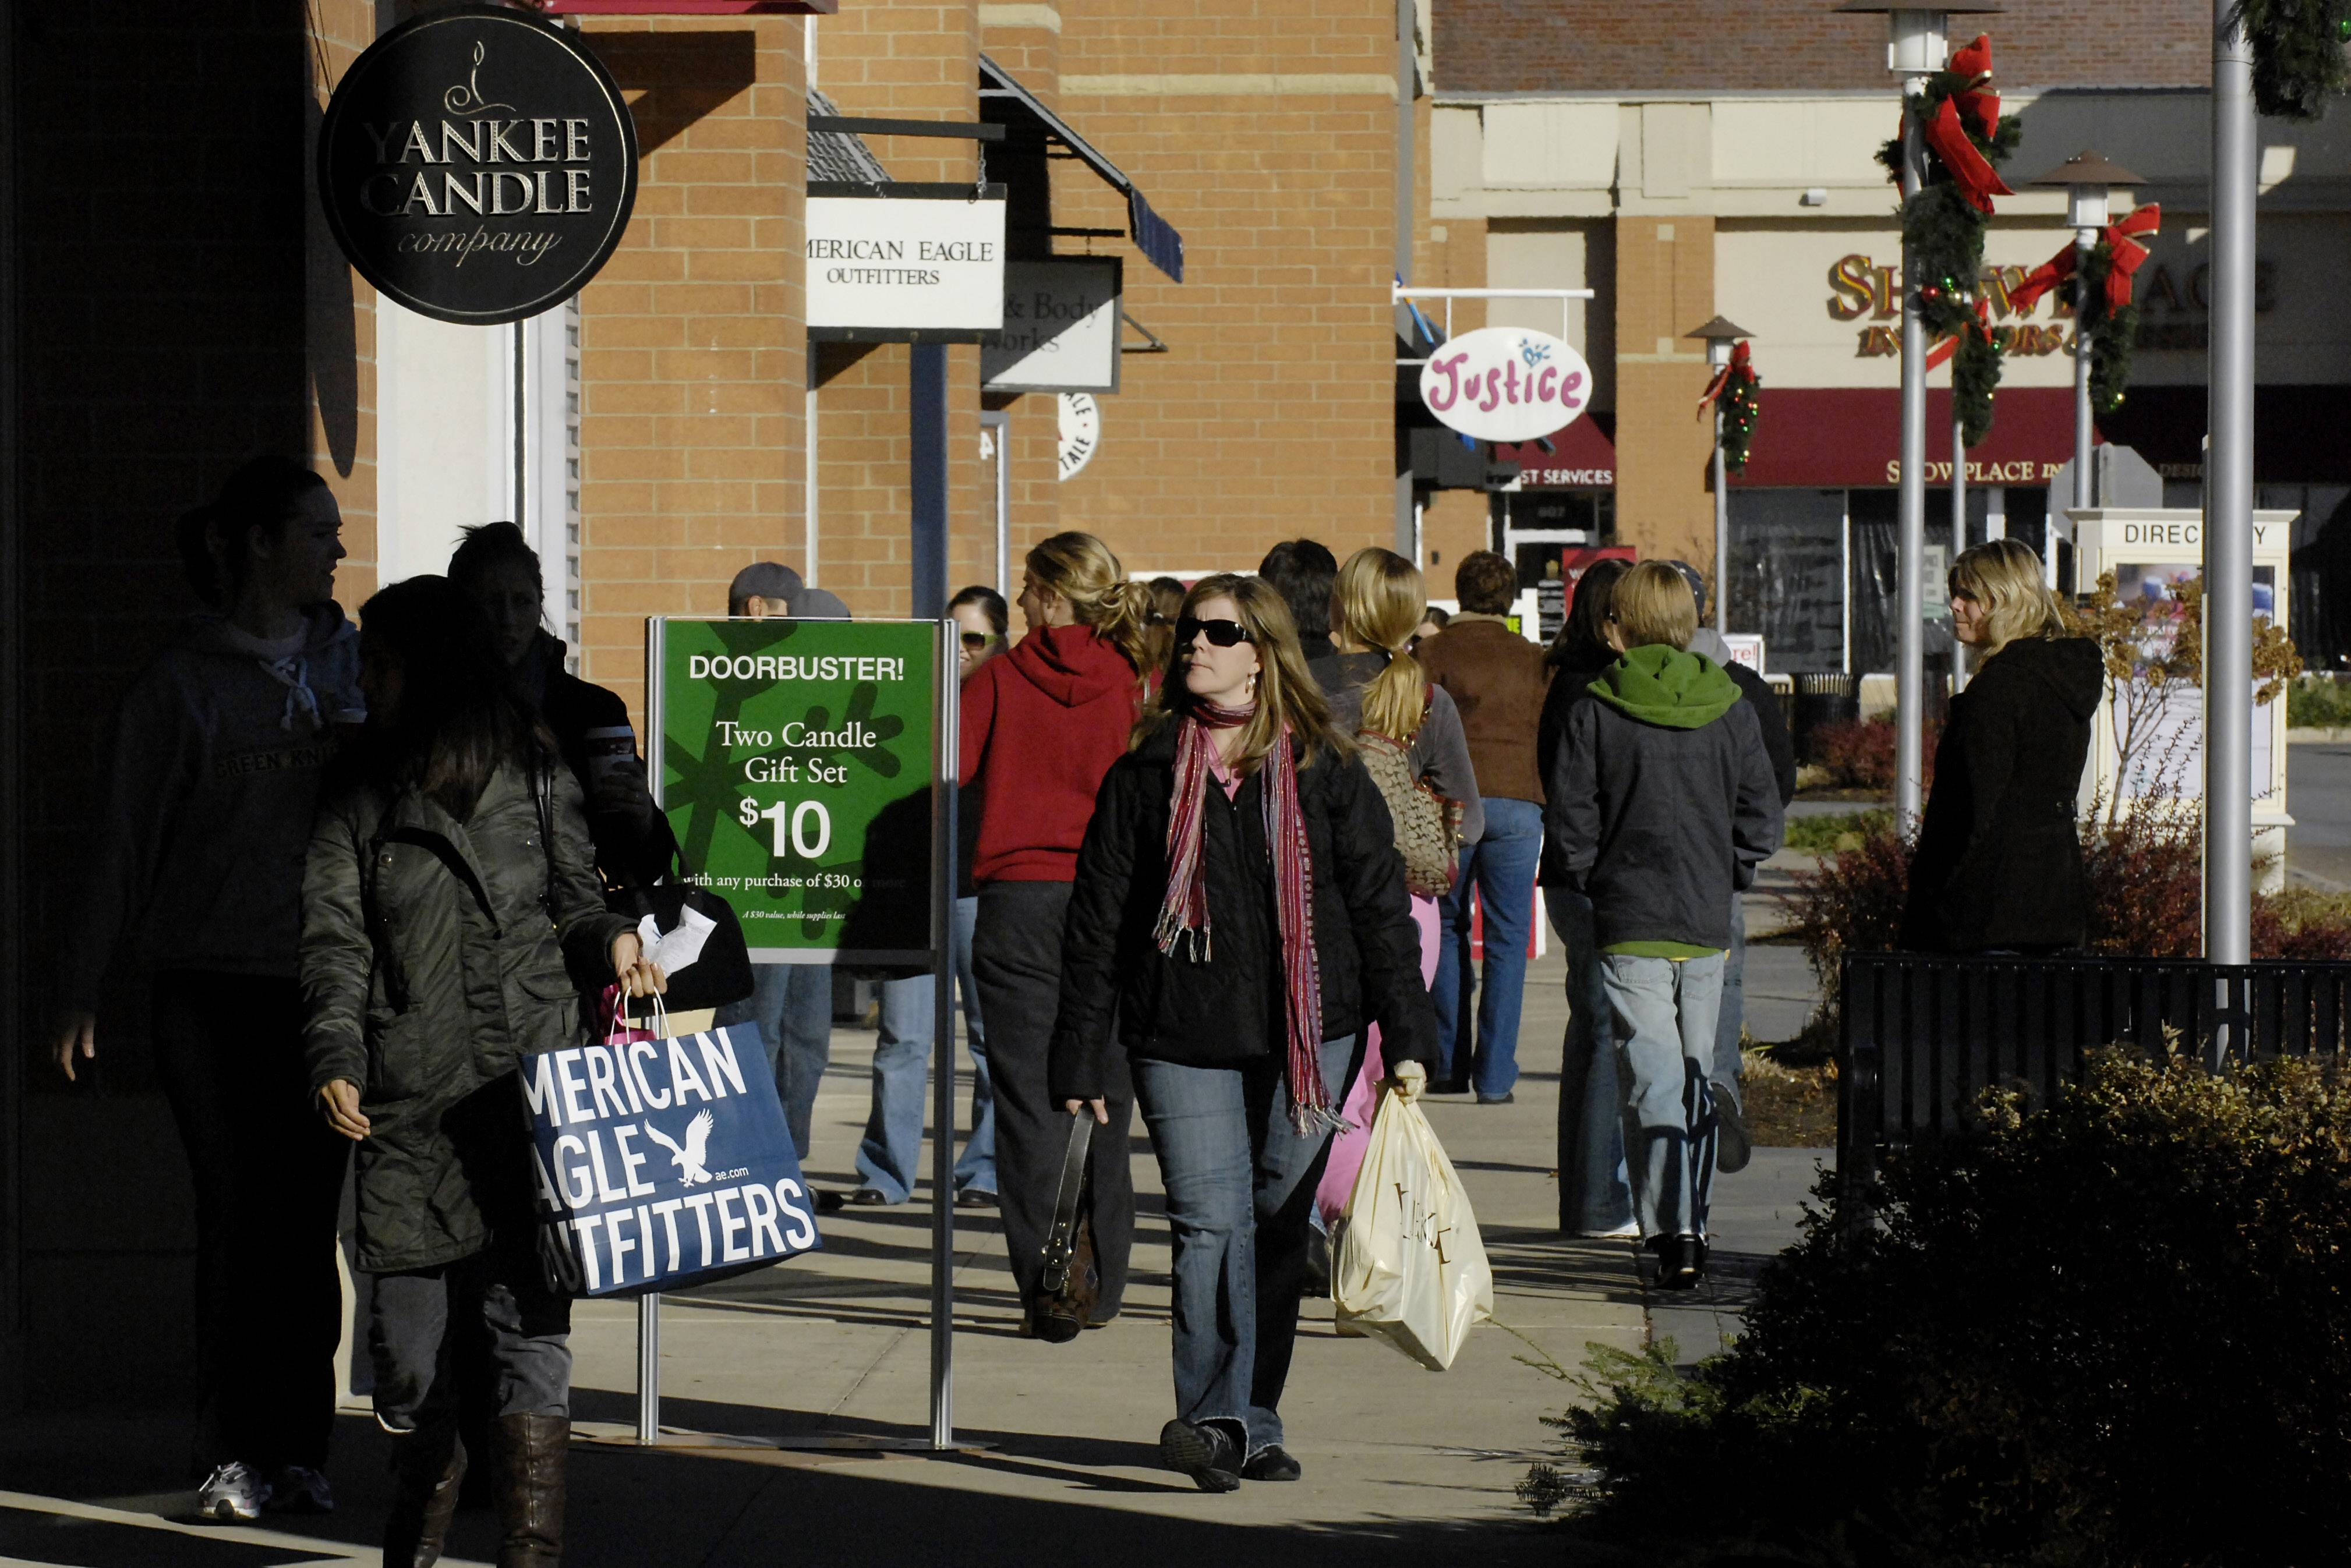 Shoppers hit Geneva Commons the morning after Thanksgiving in search of bargains. Several stores at the outdoor mall will open on Thanksgiving Day this year, including The Gap at 4 p.m. Thursday.